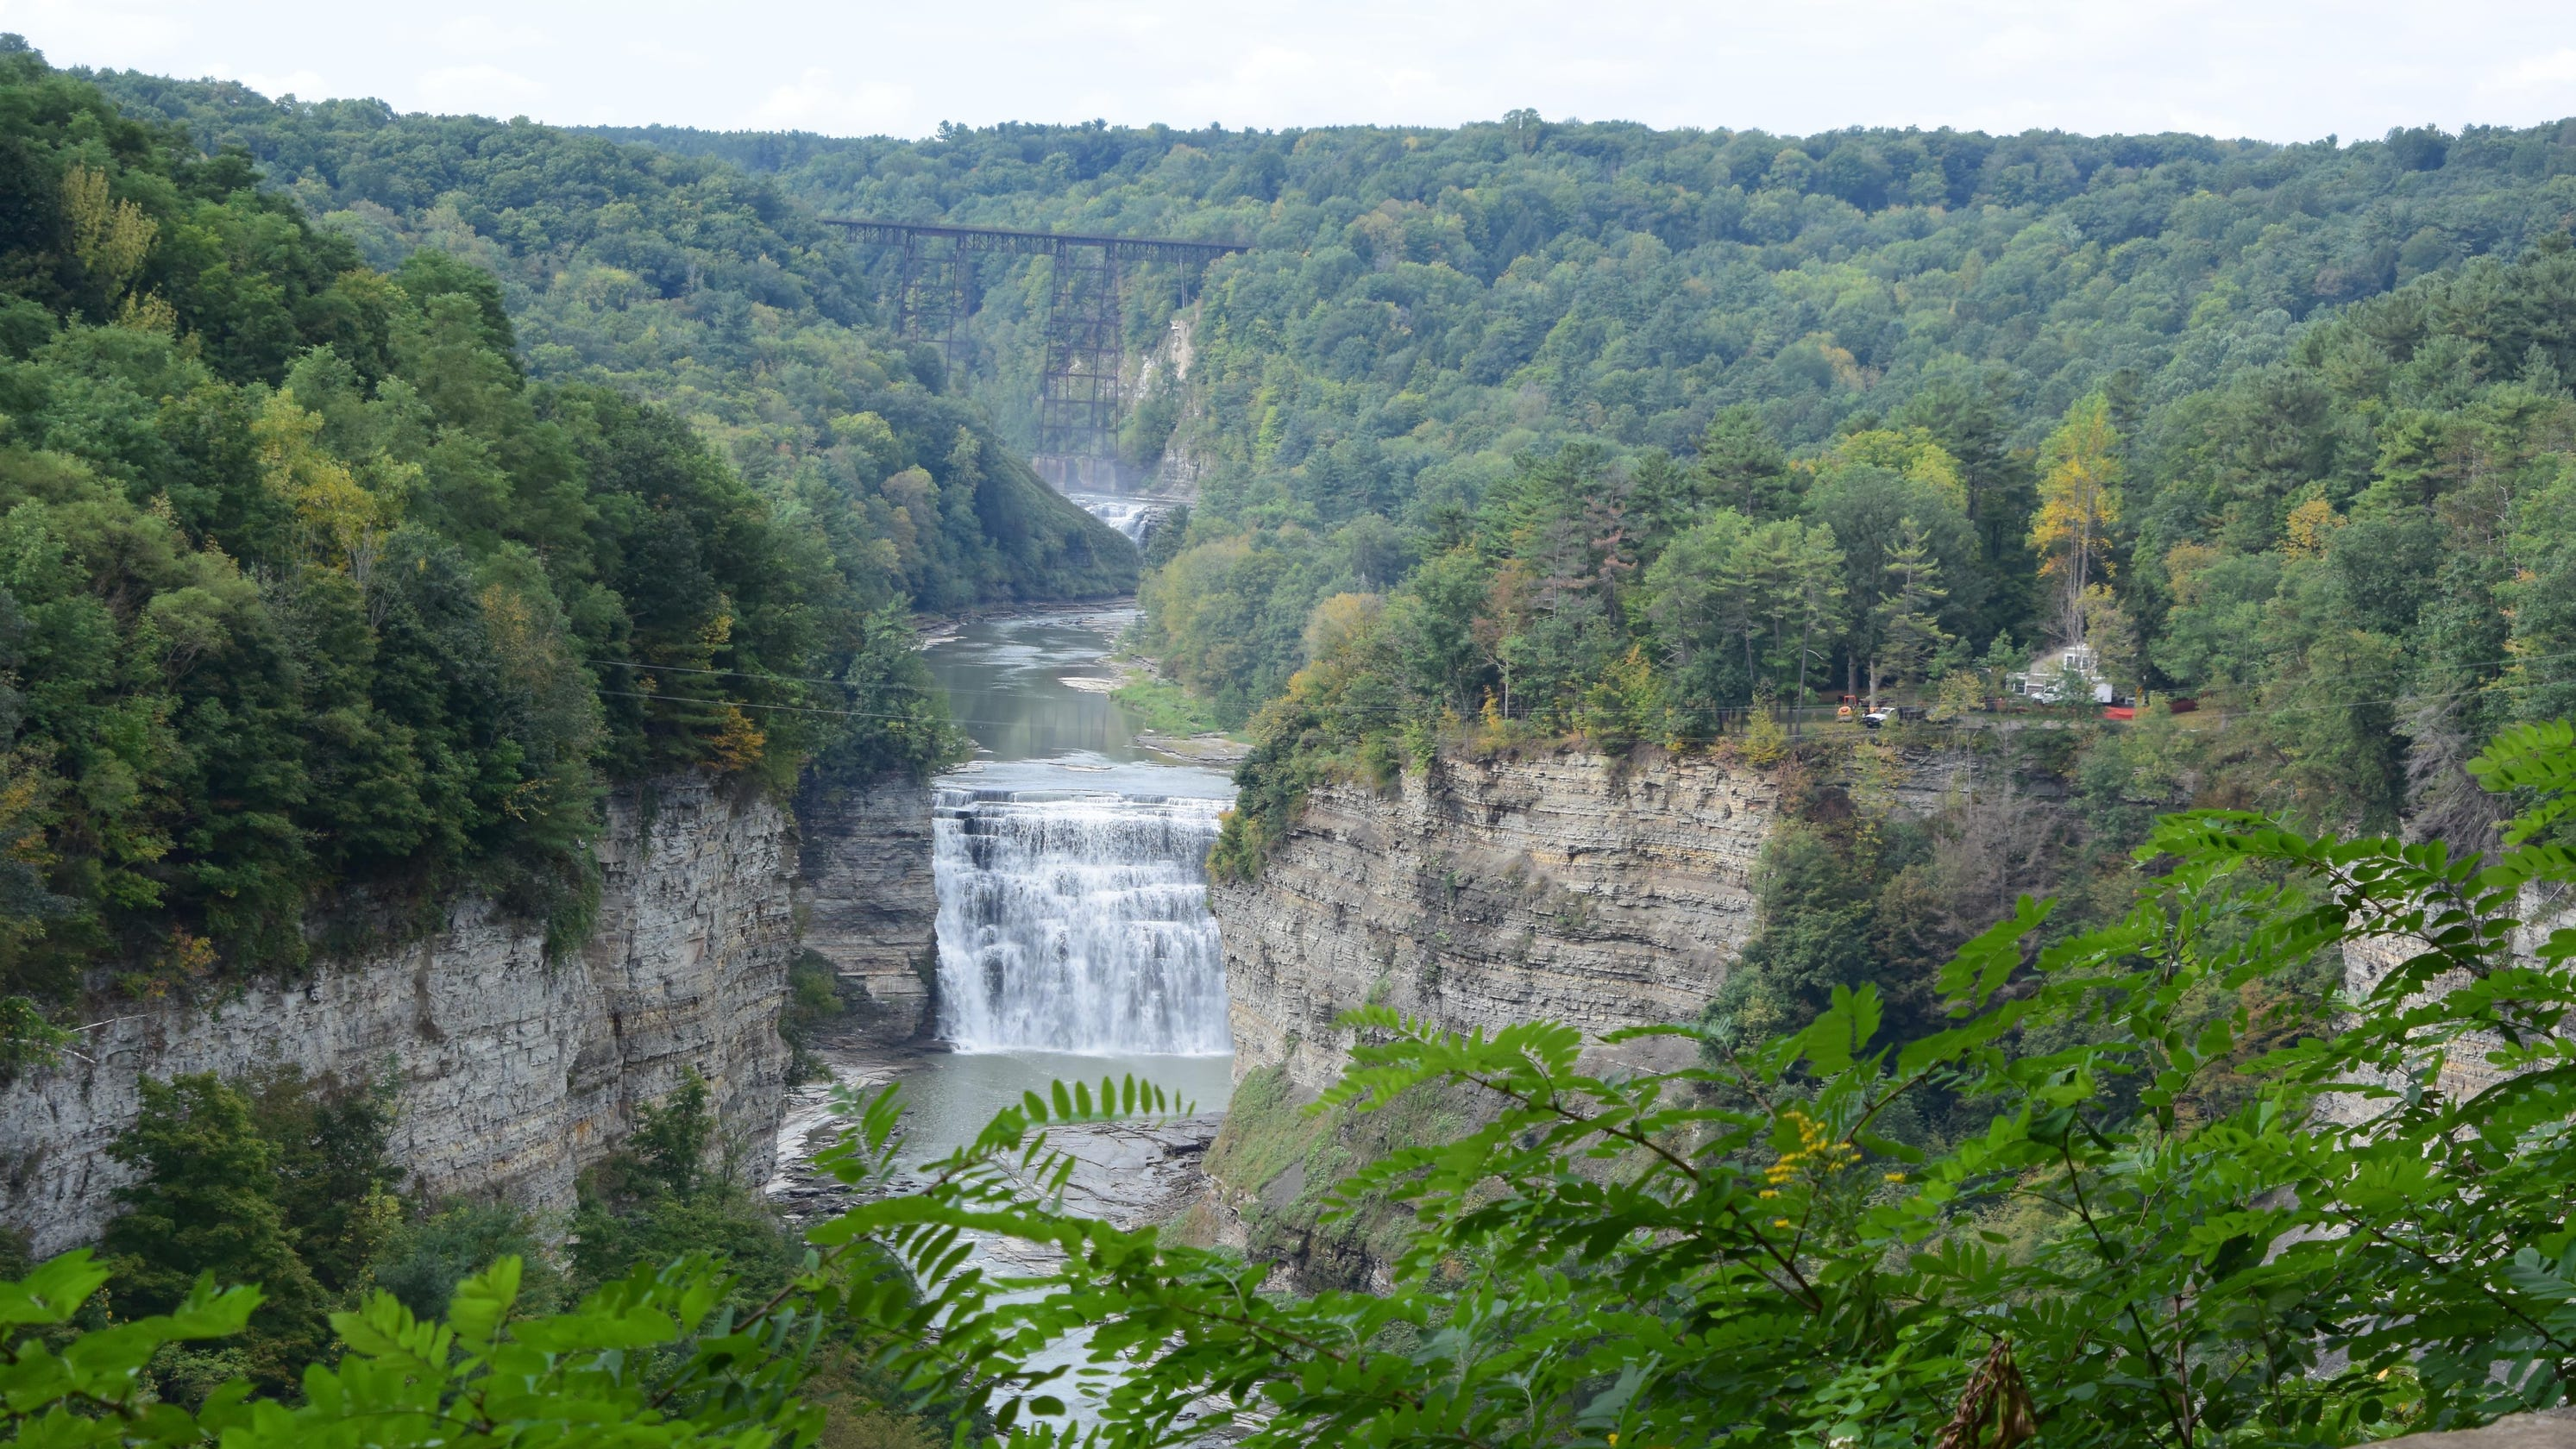 5 great places for hiking in upstate New York